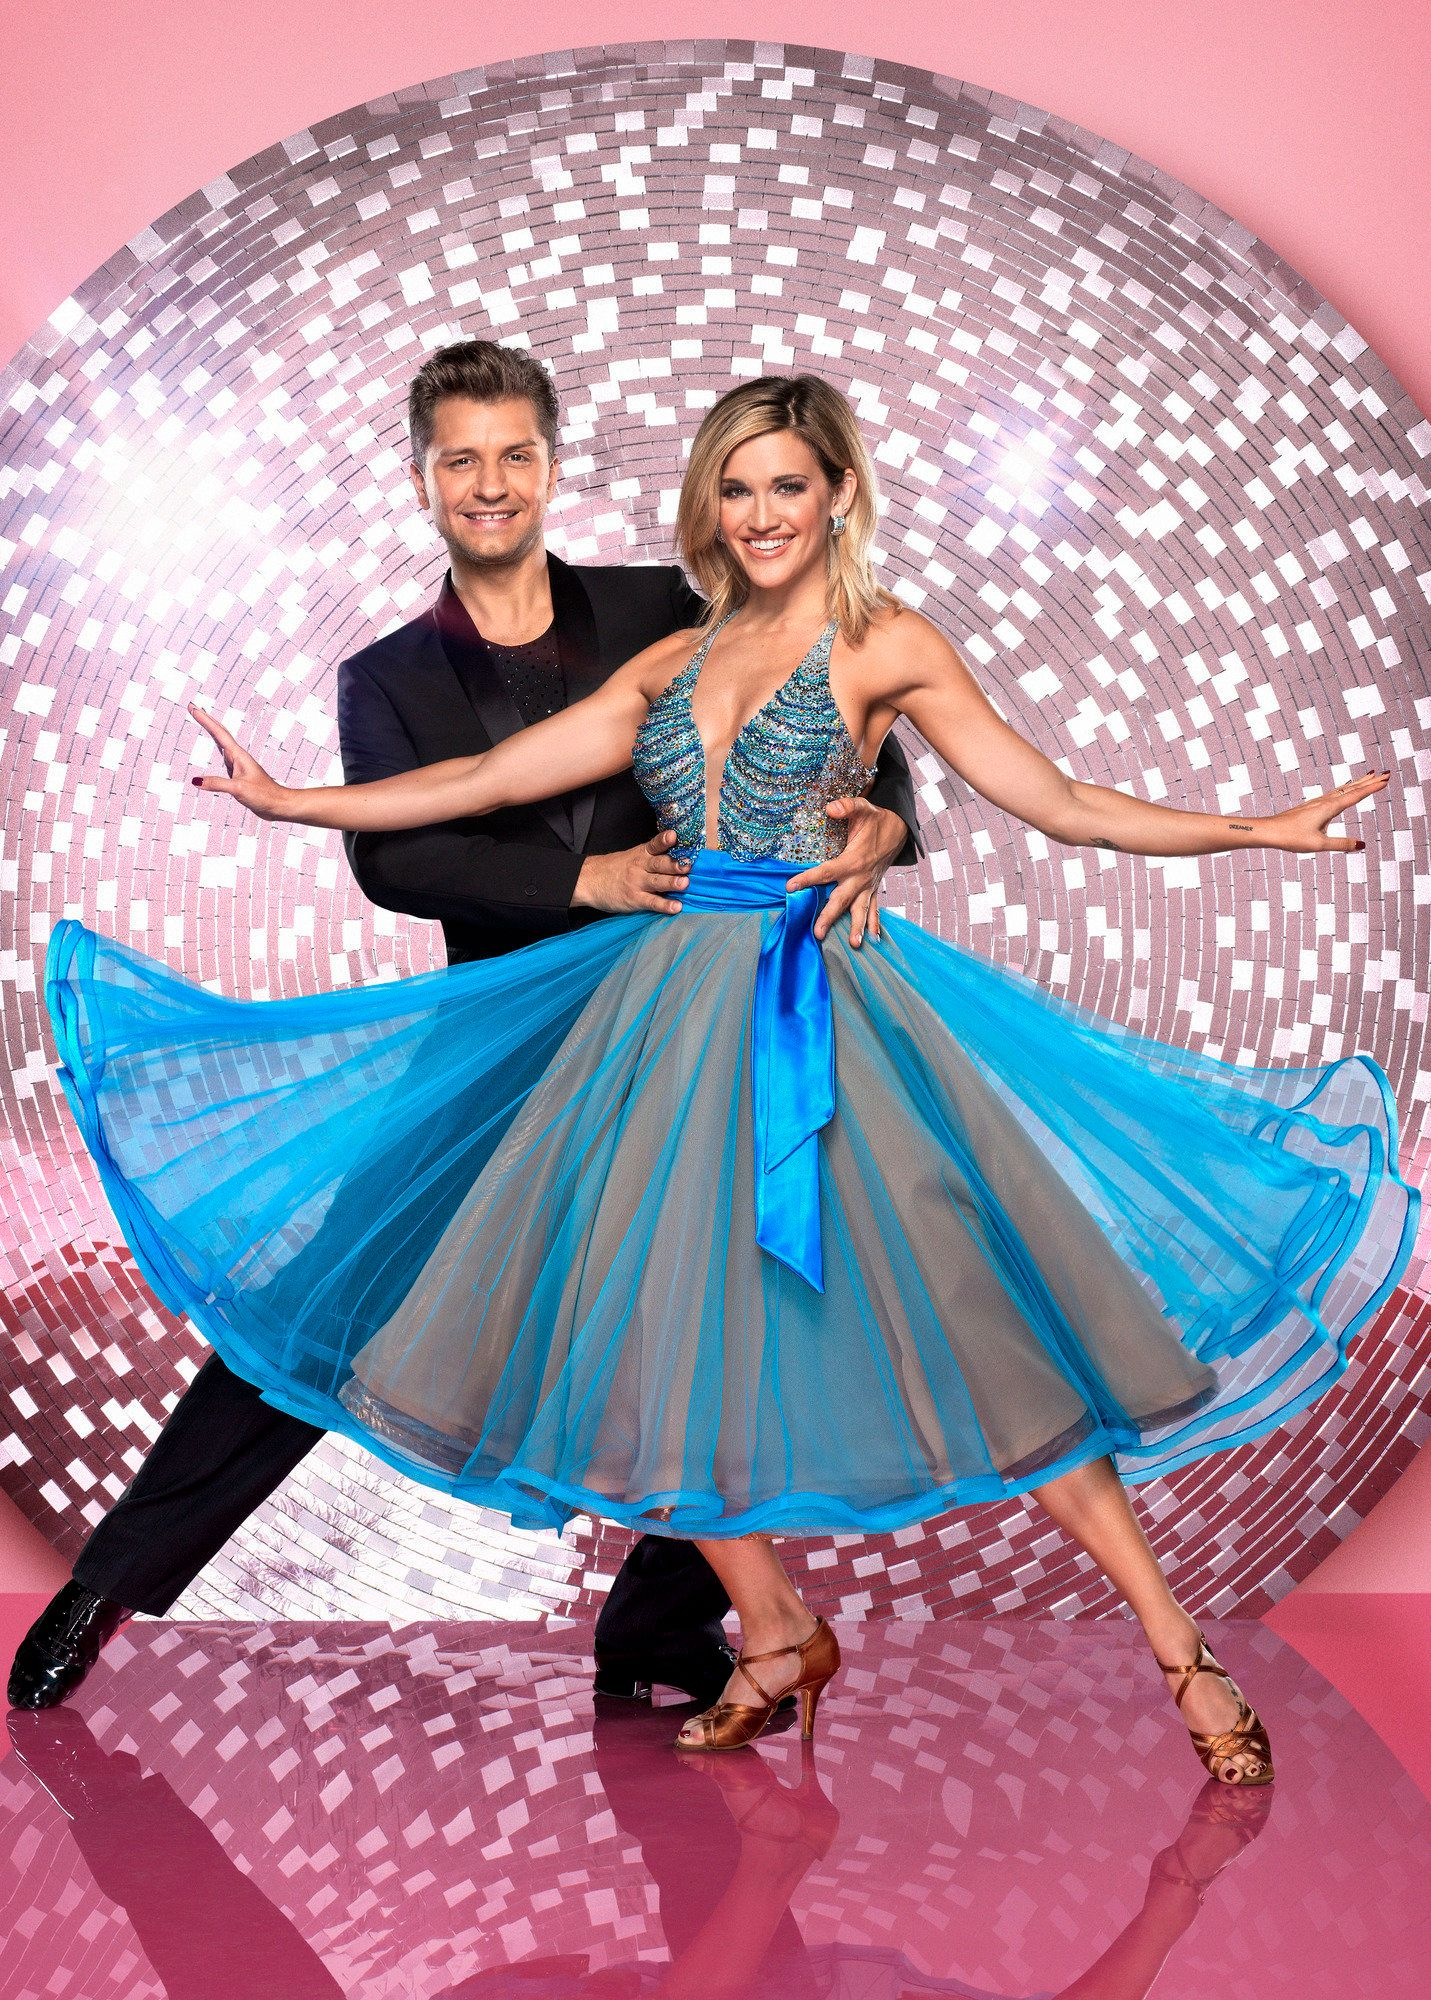 Strictly's Ashley Roberts Refuses To Be Deterred By Second Dance-Off In Impassioned Instagram